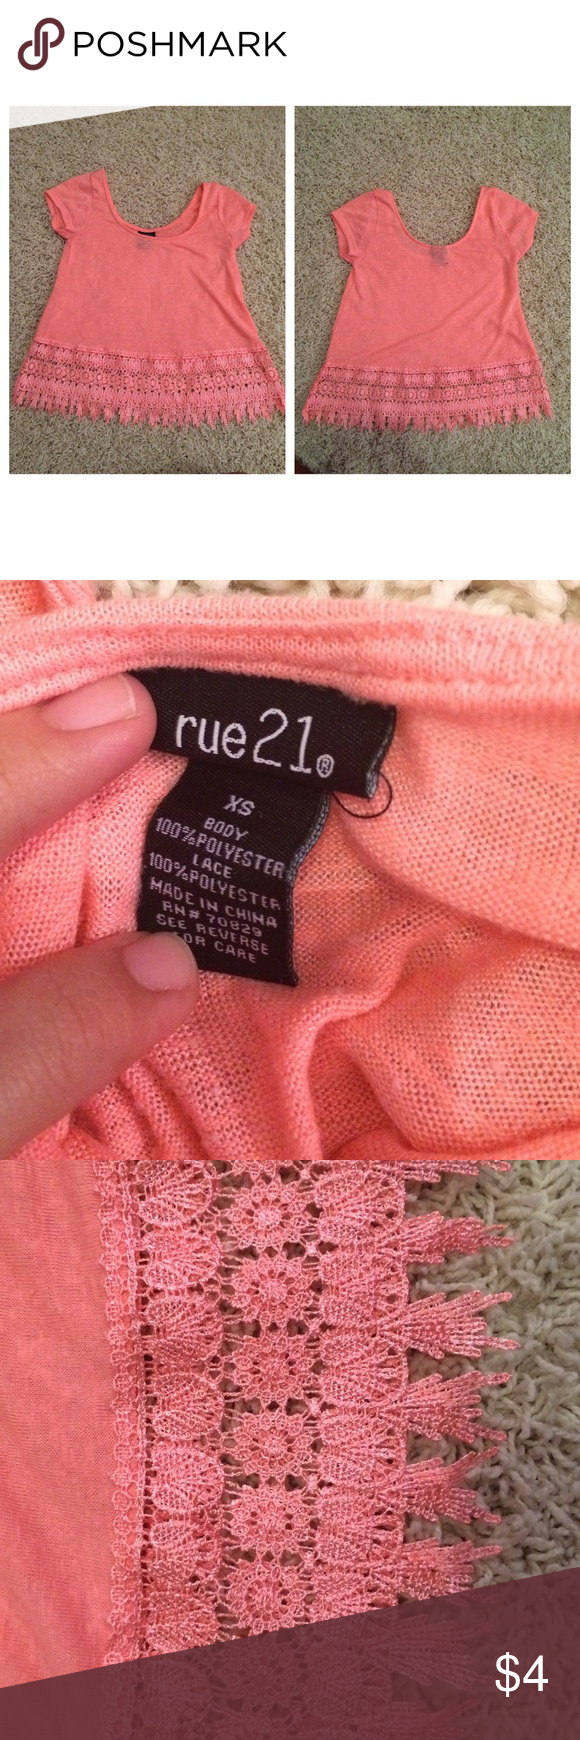 Rue21 shirt Worn once. Need gone ASAP. Size small and its stretchy. Rue 21 Tops Crop Tops